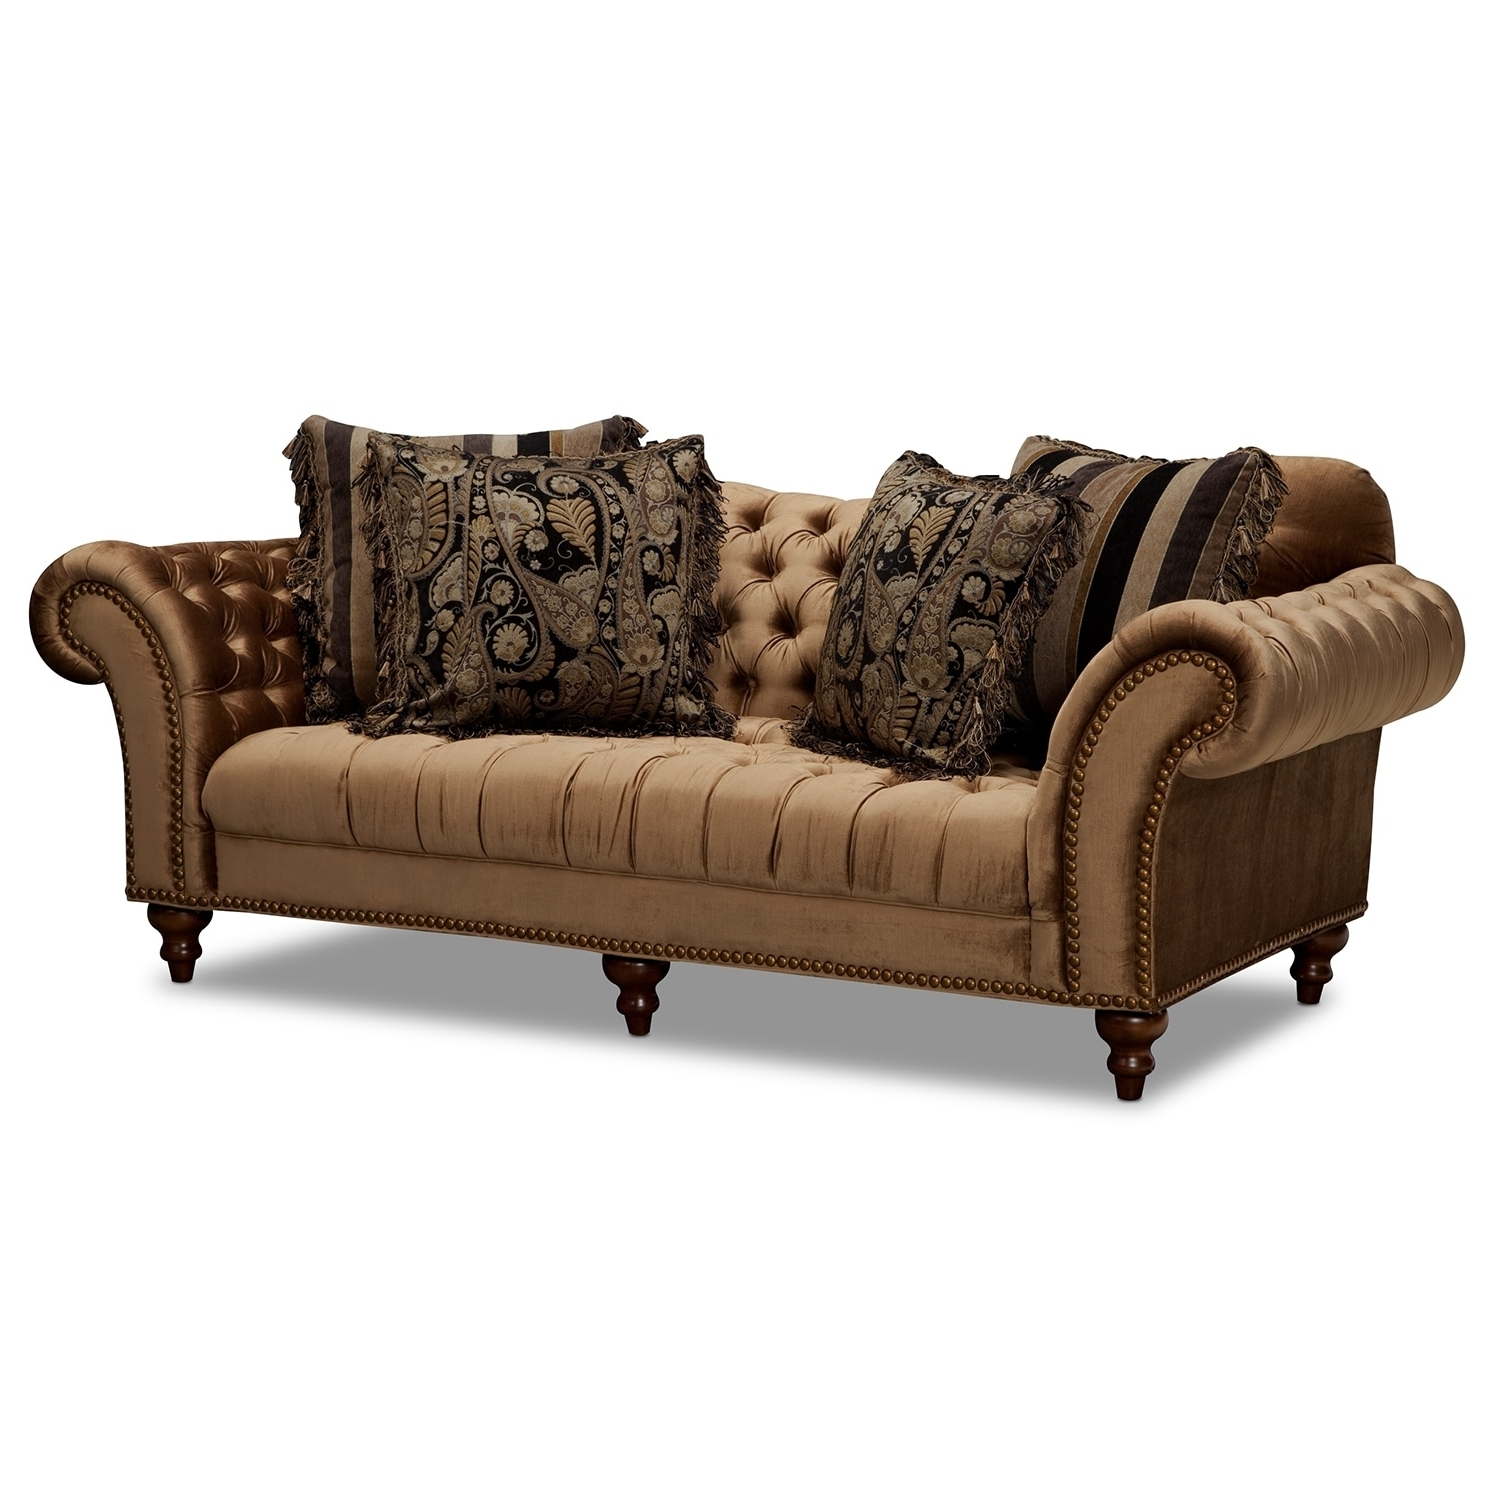 Value City Furniture And Mattresses With Trendy Value City Sofas (View 15 of 15)